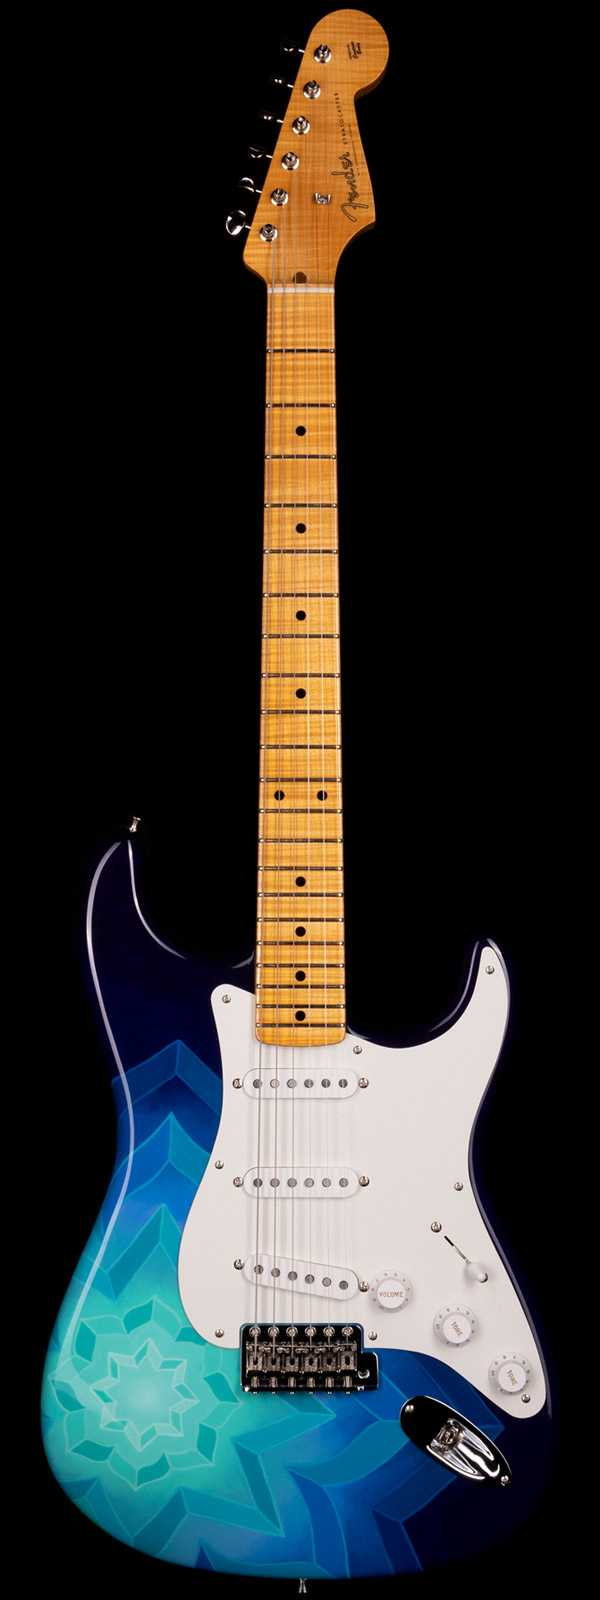 Fender Custom Shop Masterbuilt Greg Fessler 1956 Stratocaster Madison Roy Moonflake Artwork